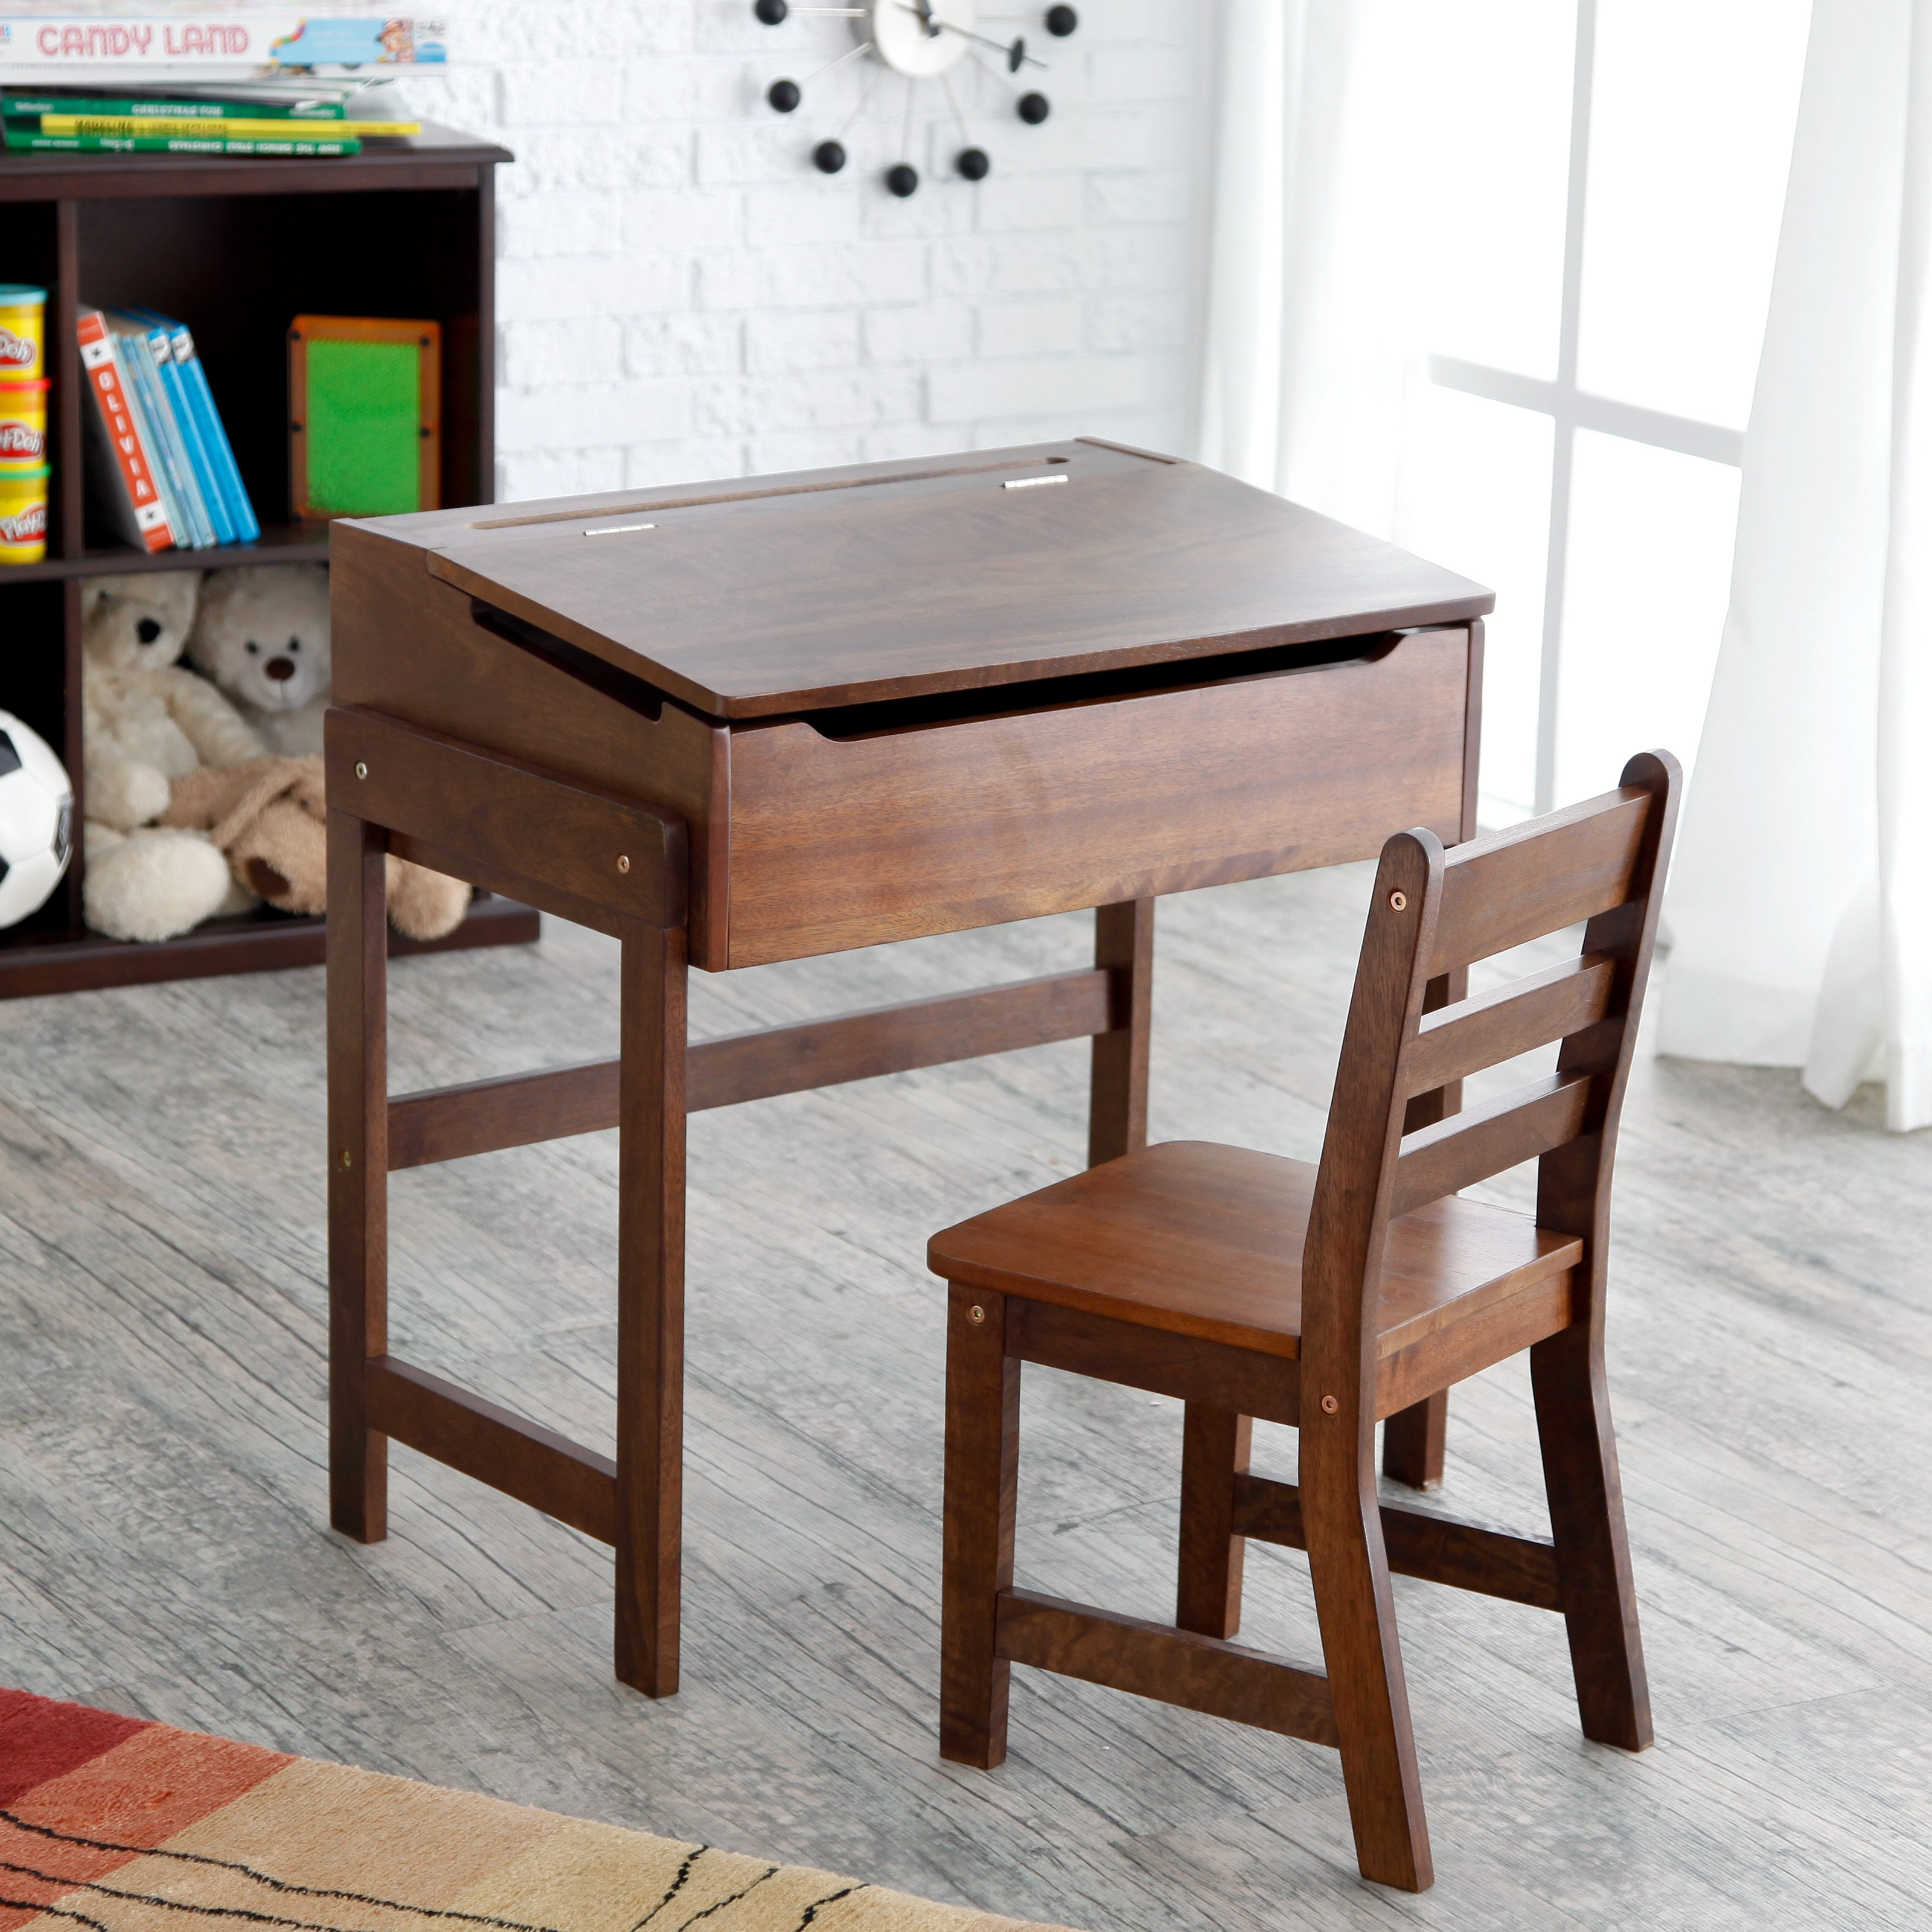 Child's Slanted Top Desk & Chair Walnut